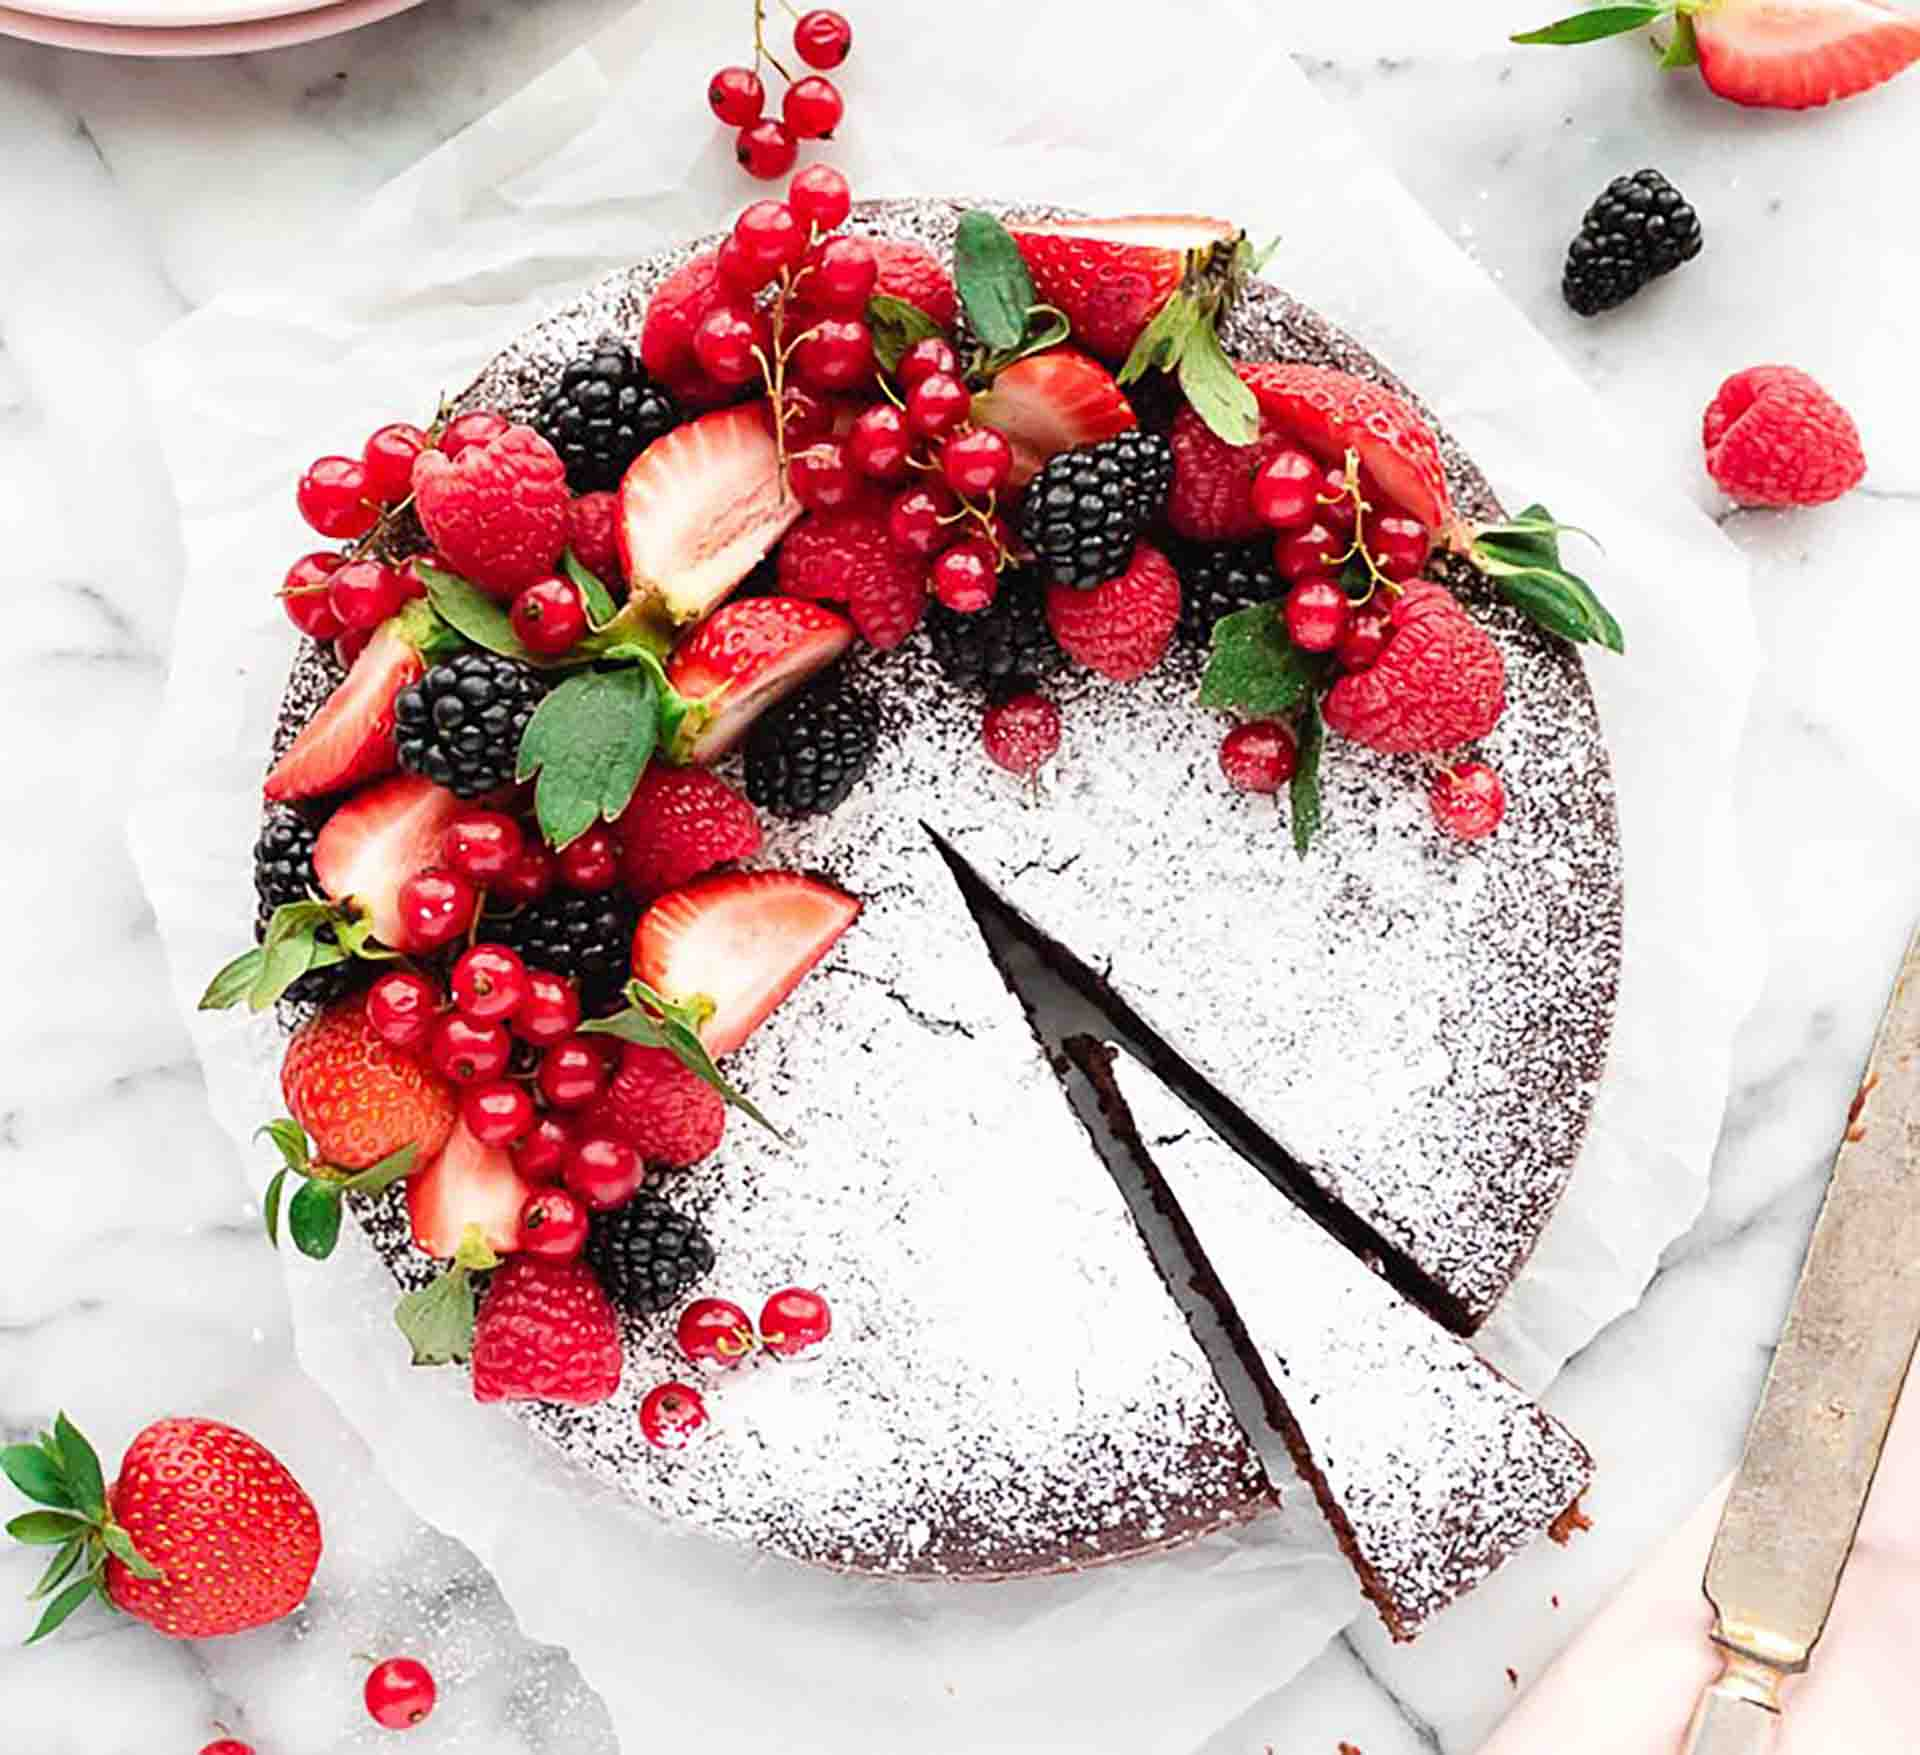 A chocolate cake decorated with various fresh fruits and dusted with powdered sugar.